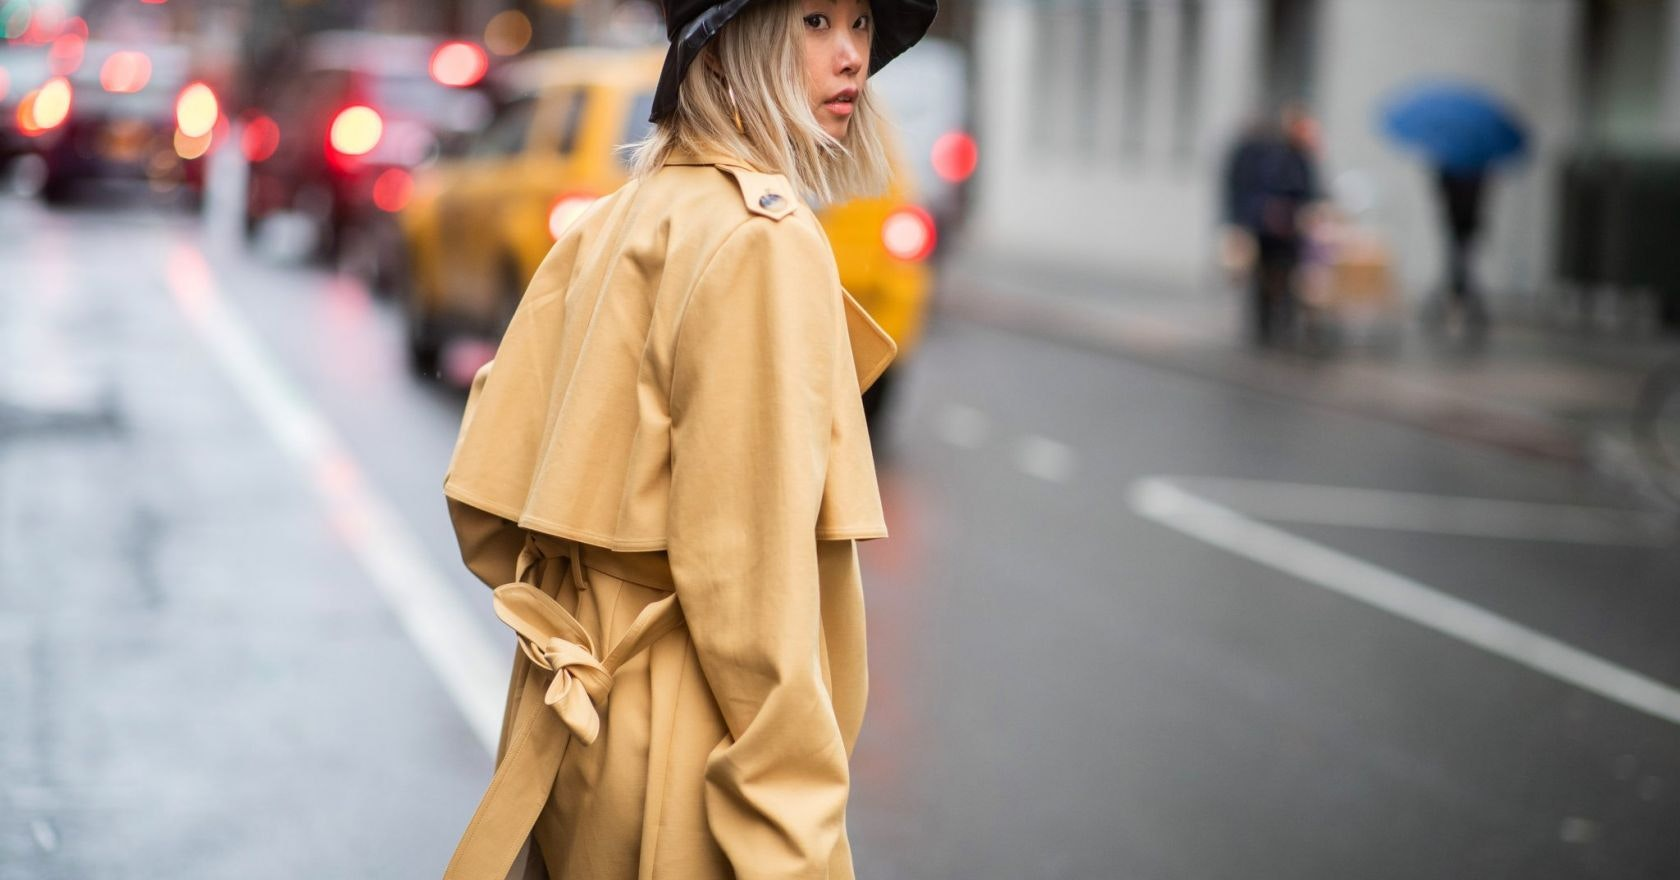 These are the hats, hairbands and scarves bossing New York street style